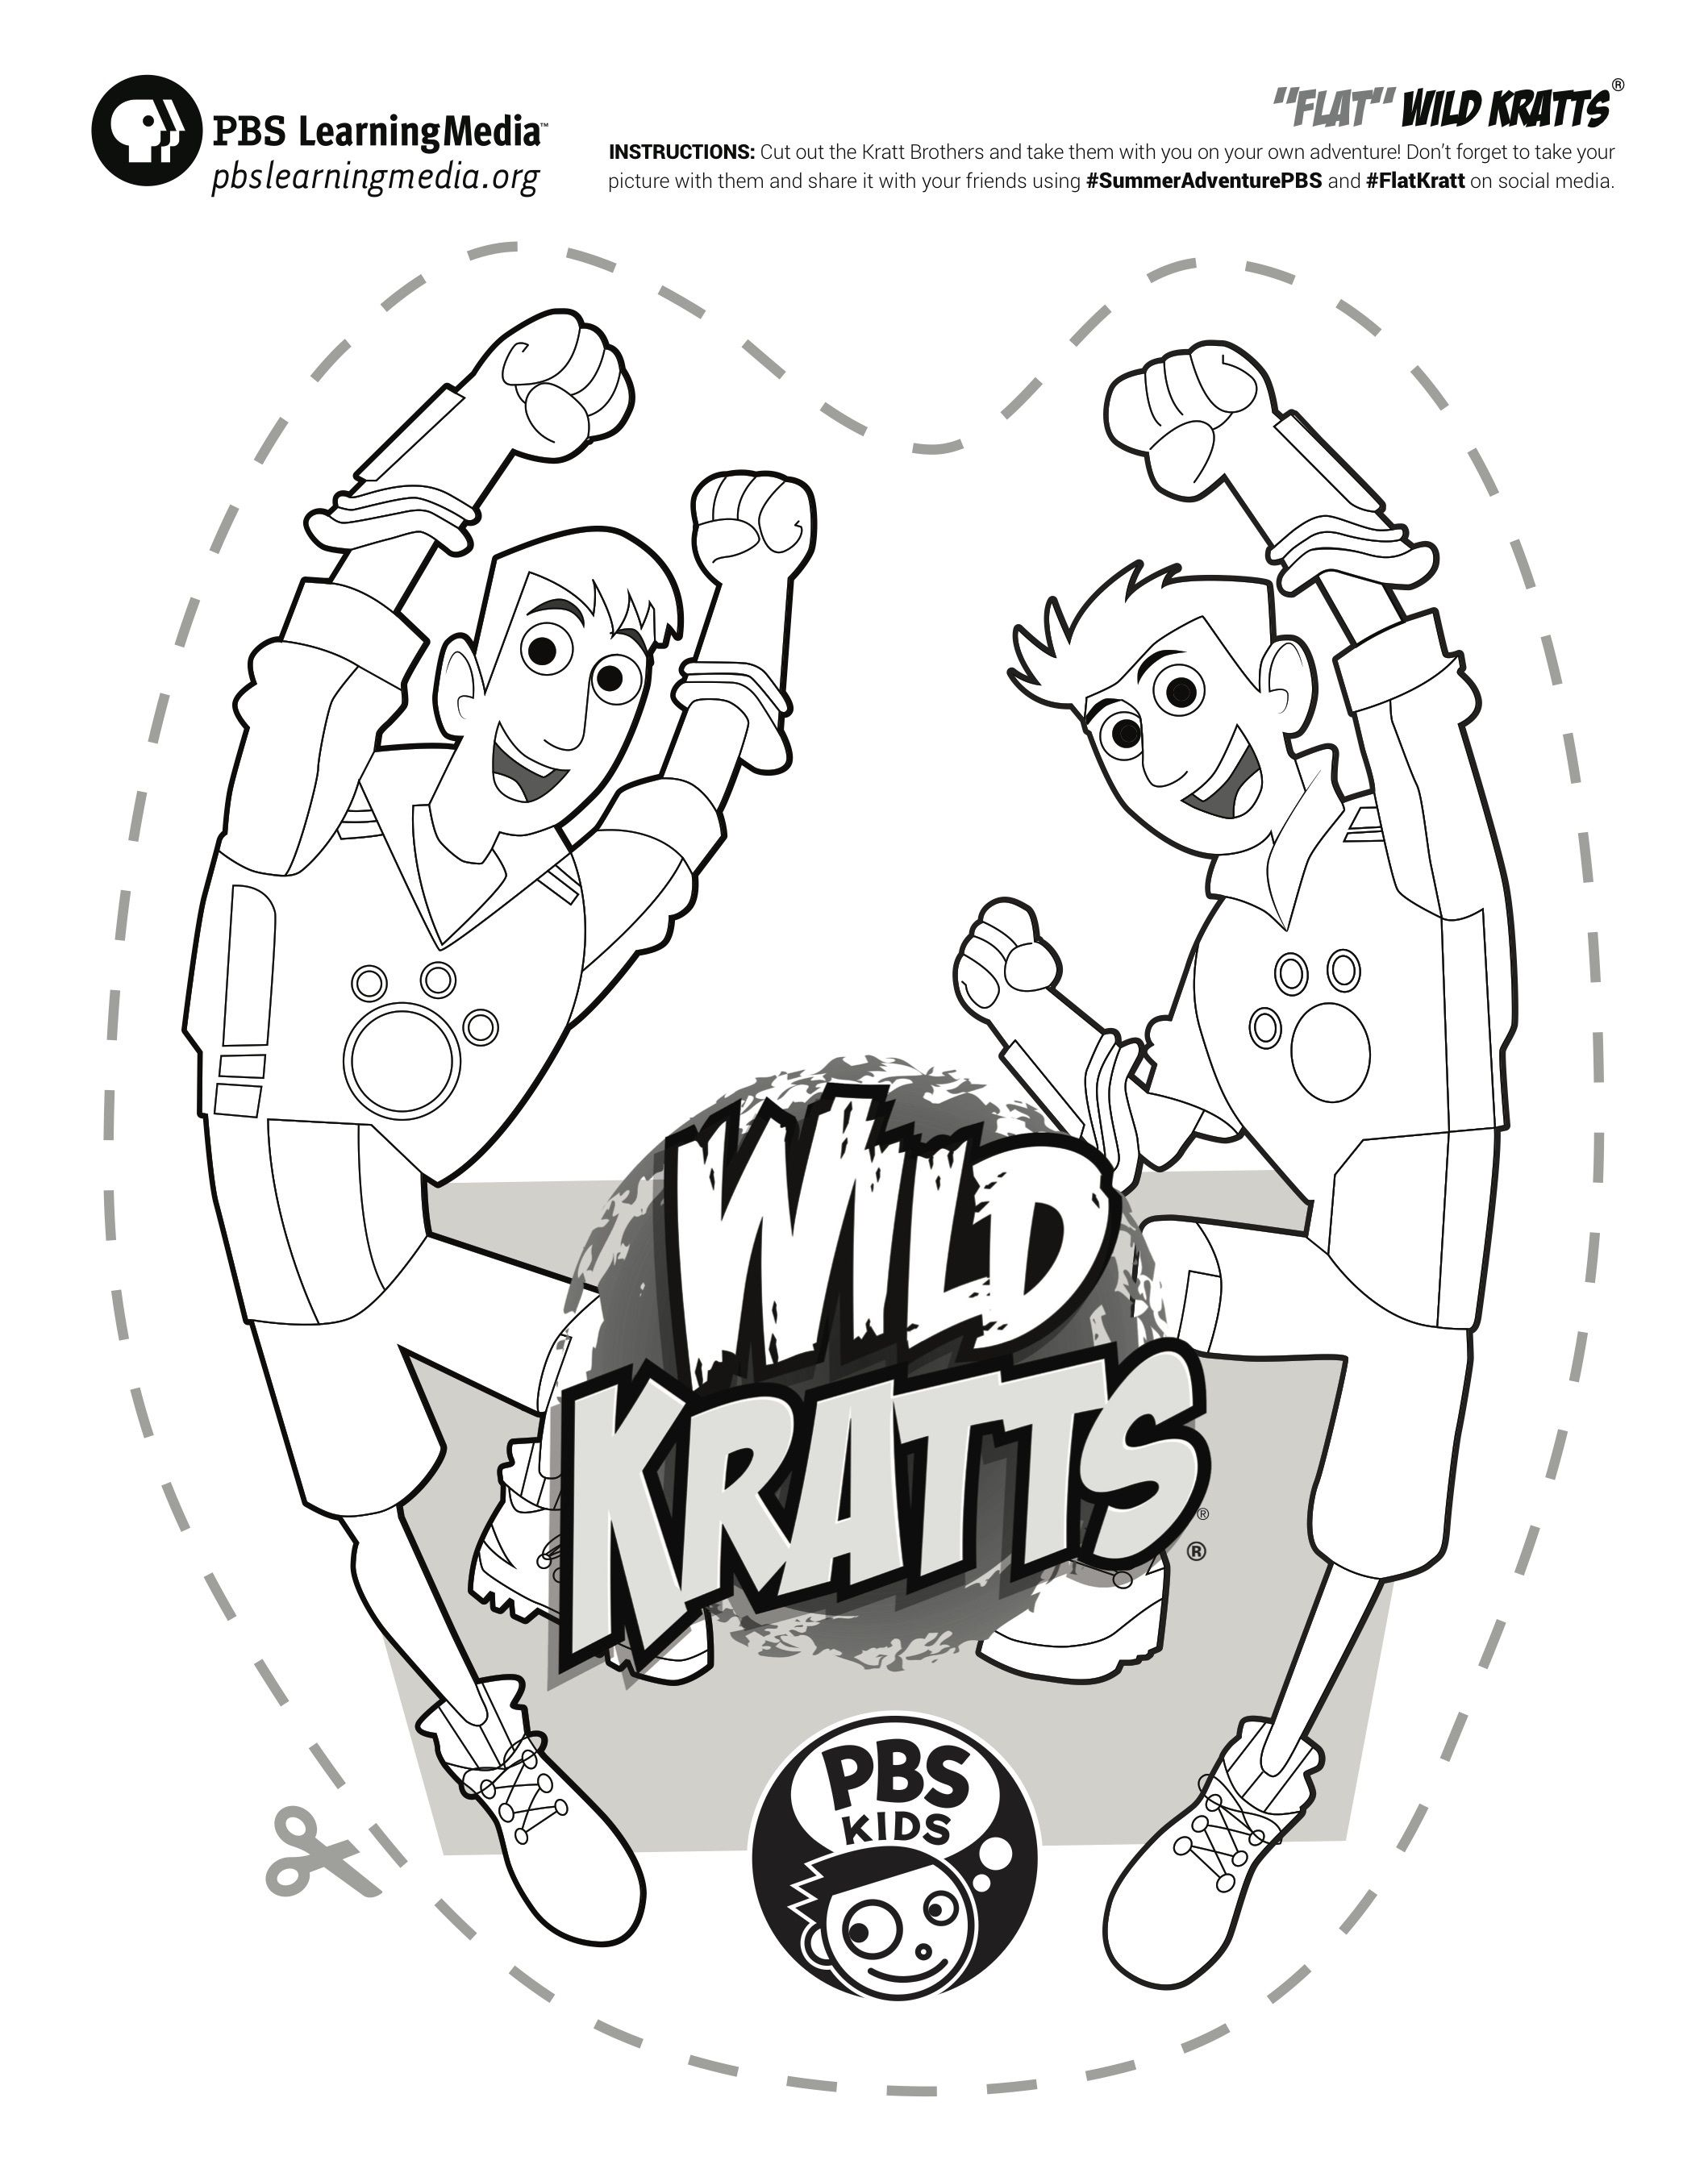 Wild Kratts Coloring Pages Pdf Printable Wild Kratts Coloring Page To Download And Colo Wild Kratts Coloring Pages Cartoon Coloring Pages Bird Coloring Pages